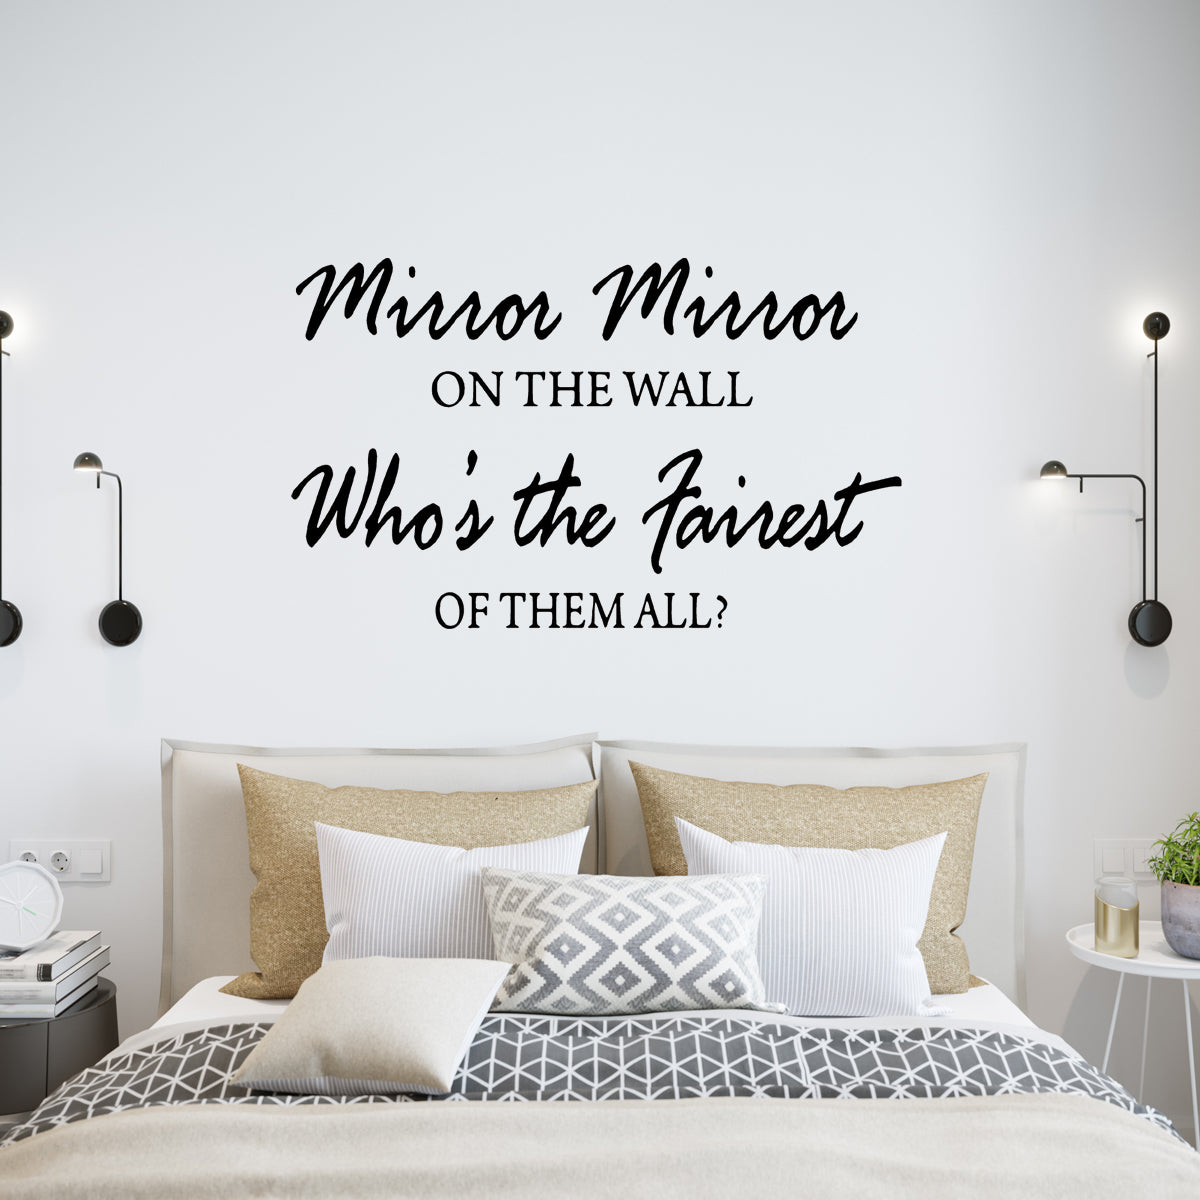 VWAQ Mirror Mirror on the Wall Who's the Fairest of them All Wall Decal - VWAQ Vinyl Wall Art Quotes and Prints